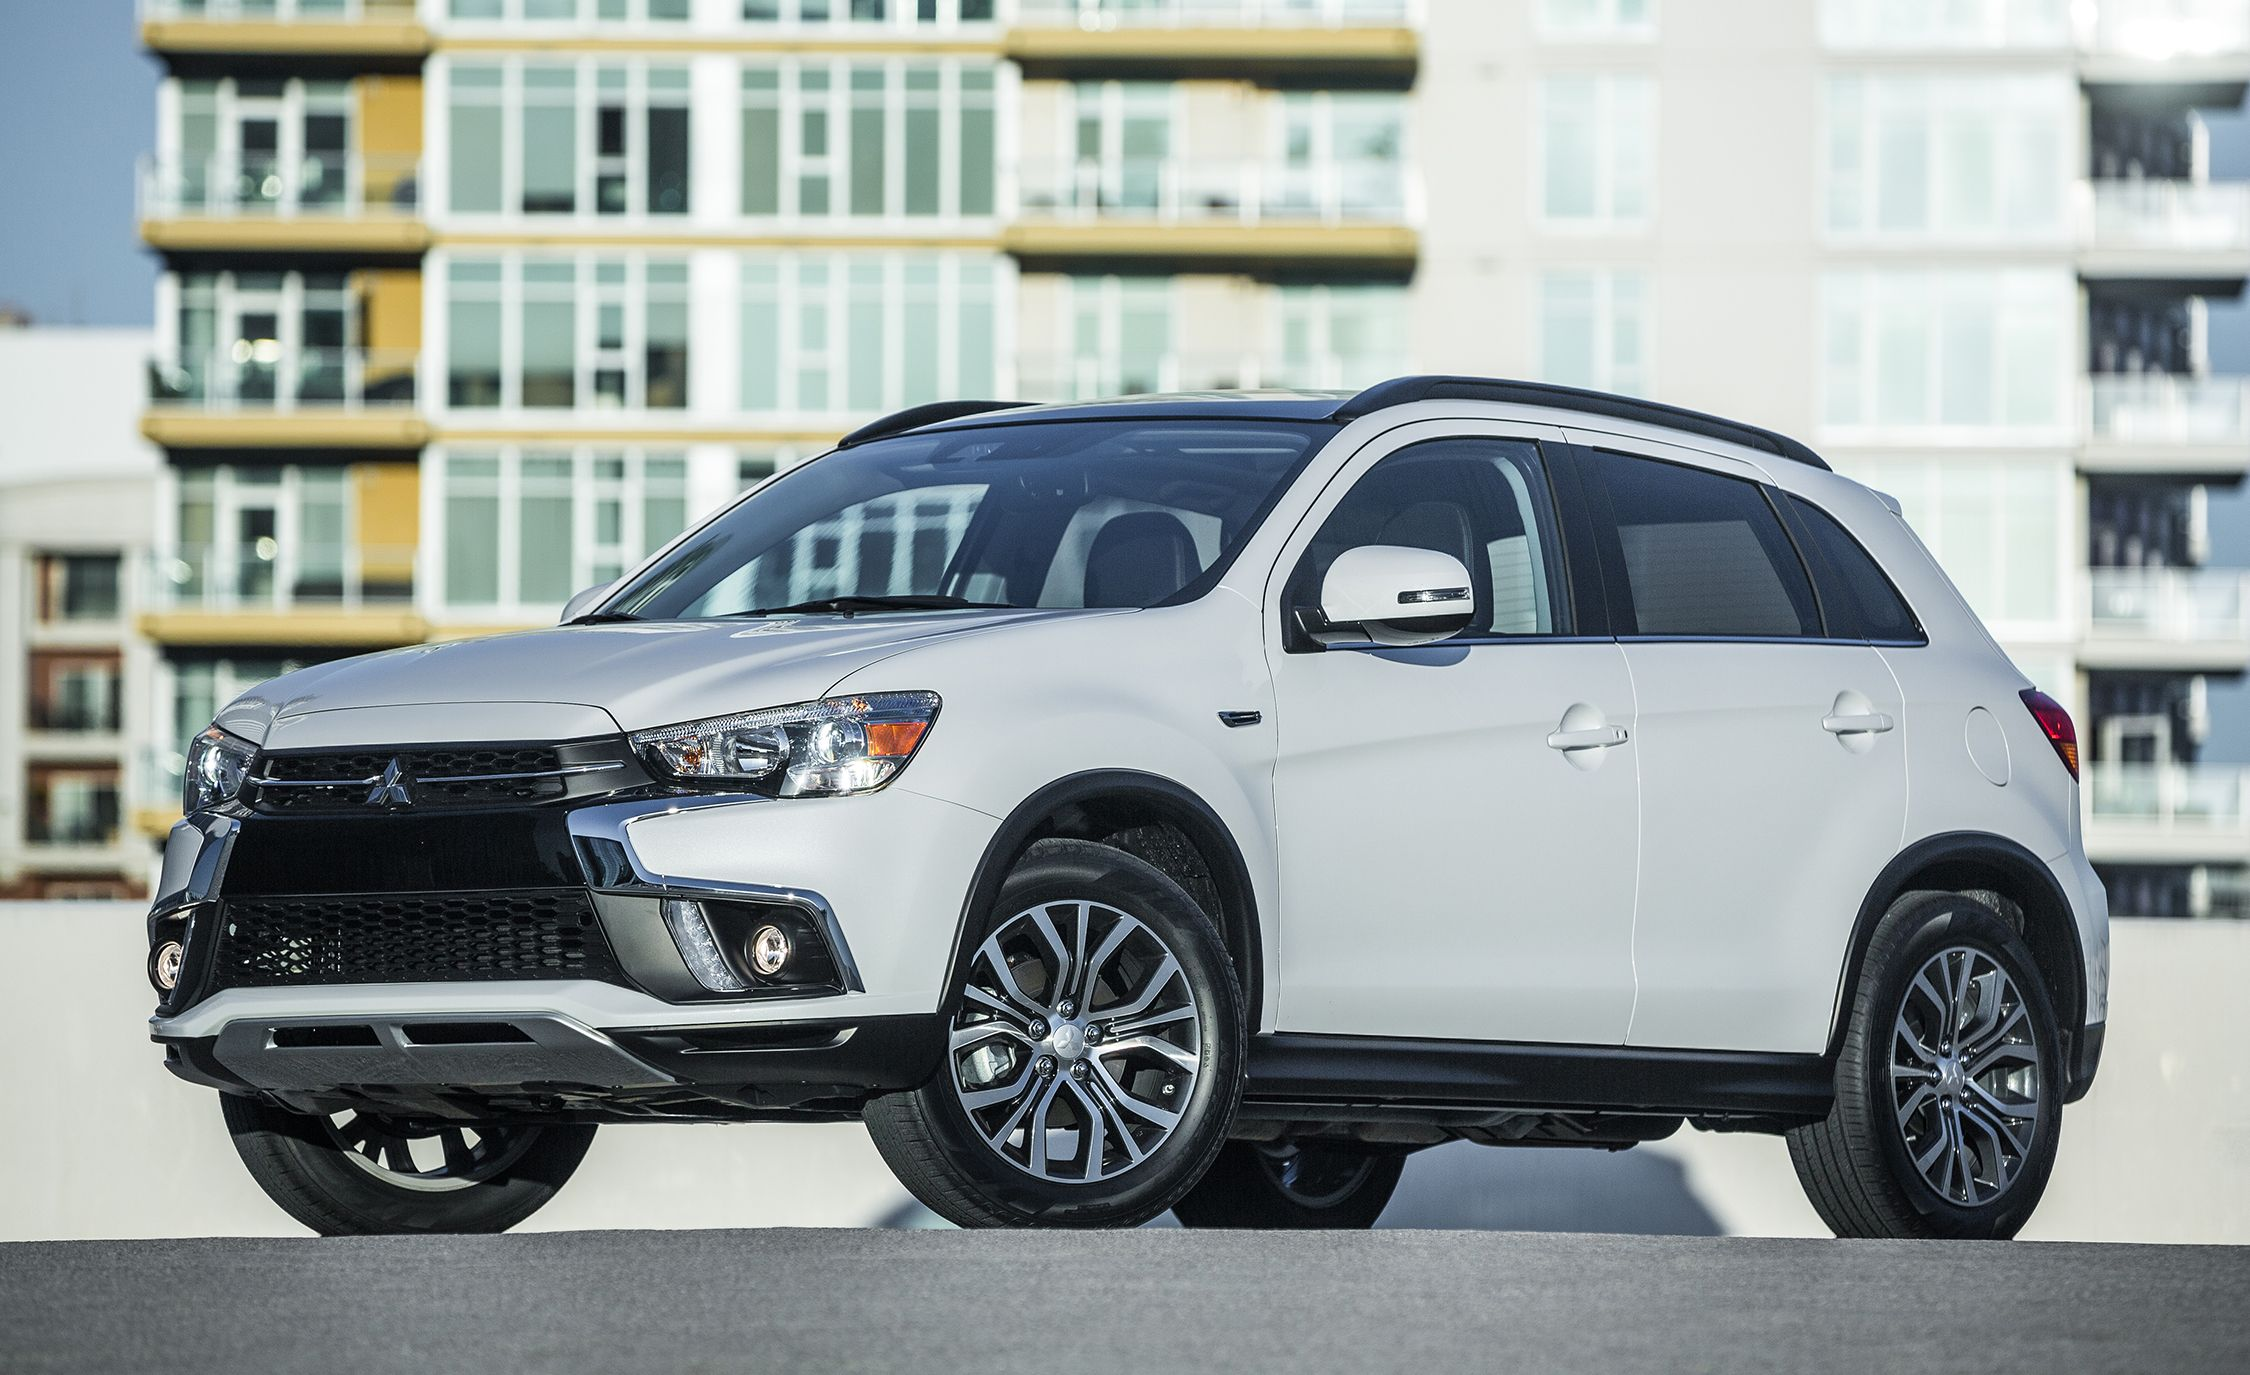 2020 Mitsubishi Outlander Sport Reviews Mitsubishi Outlander Sport